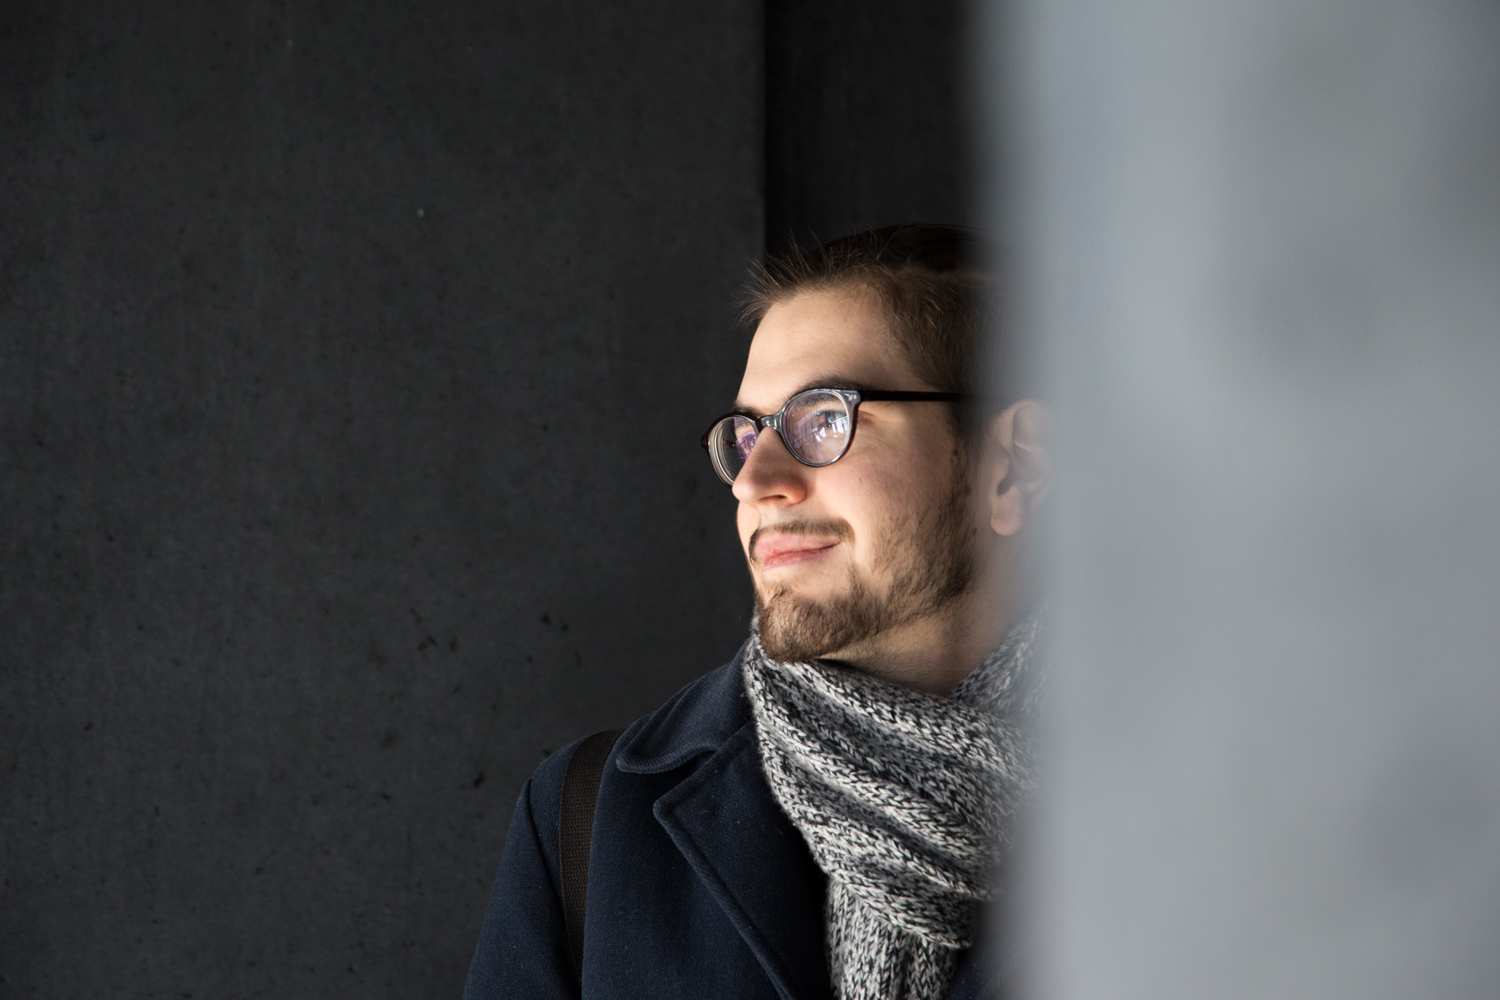 At the Harpa in Reykjavík, Florian Lehmuth is staring pensively into the void, a secret smile on his lips.